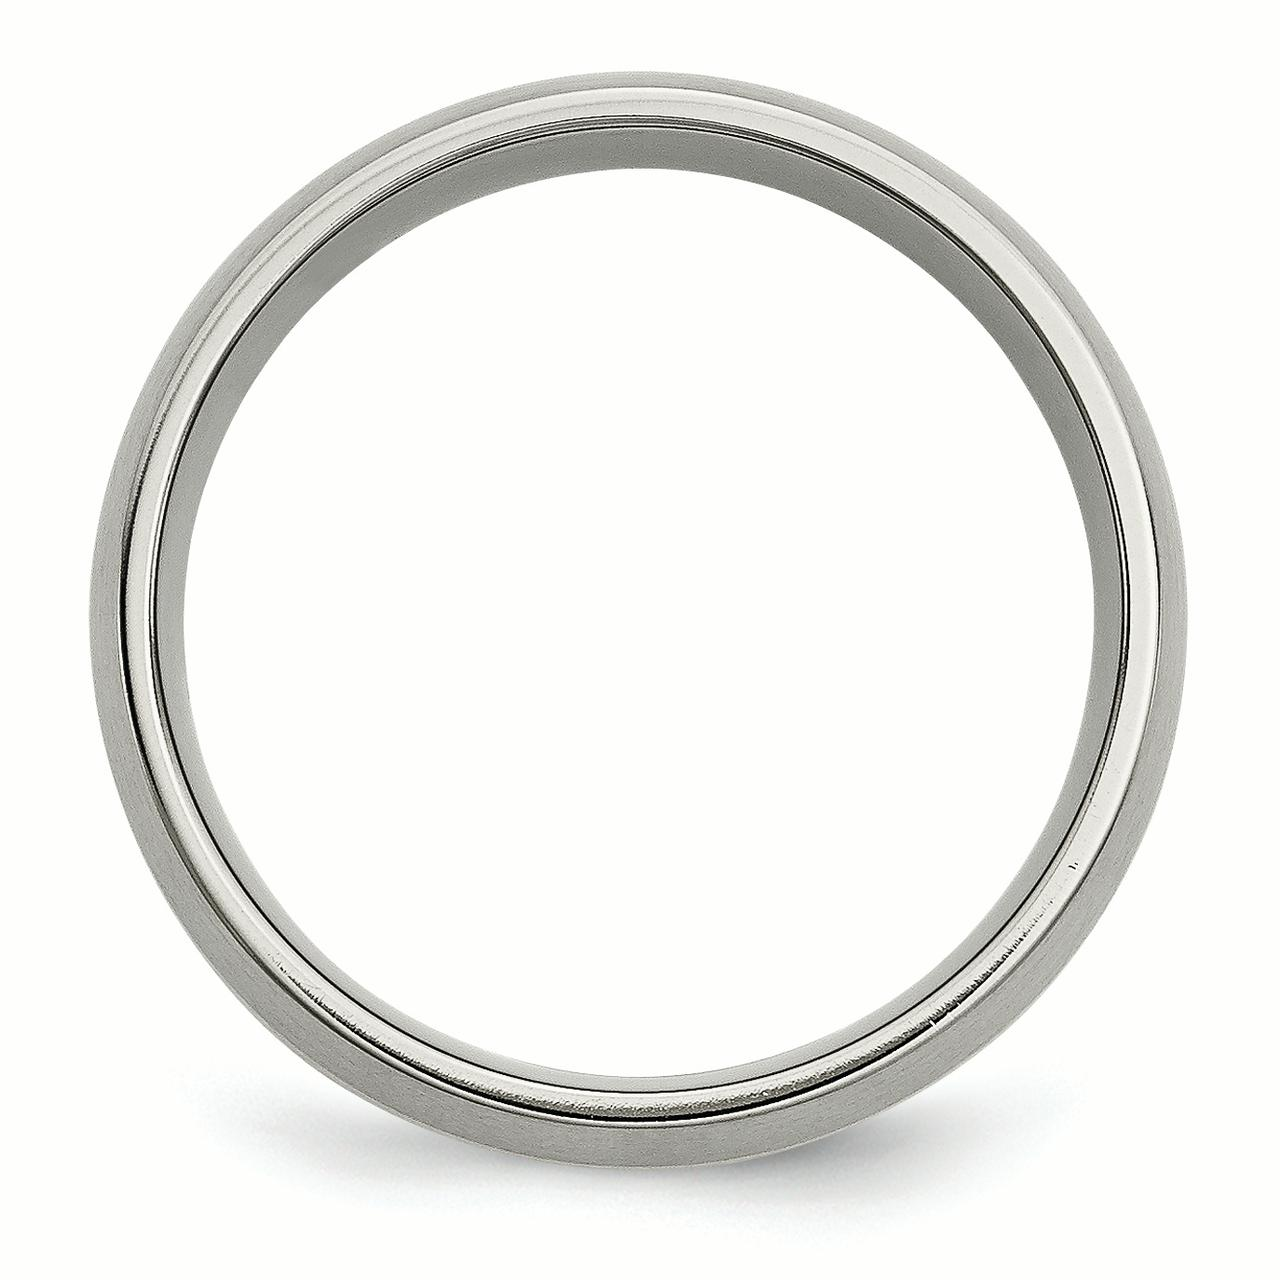 Titanium 14k Yellow Inlay 8mm Brushed Wedding Ring Band Size 8.50 Precious Metal Fine Jewelry Gifts For Women For Her - image 1 de 6